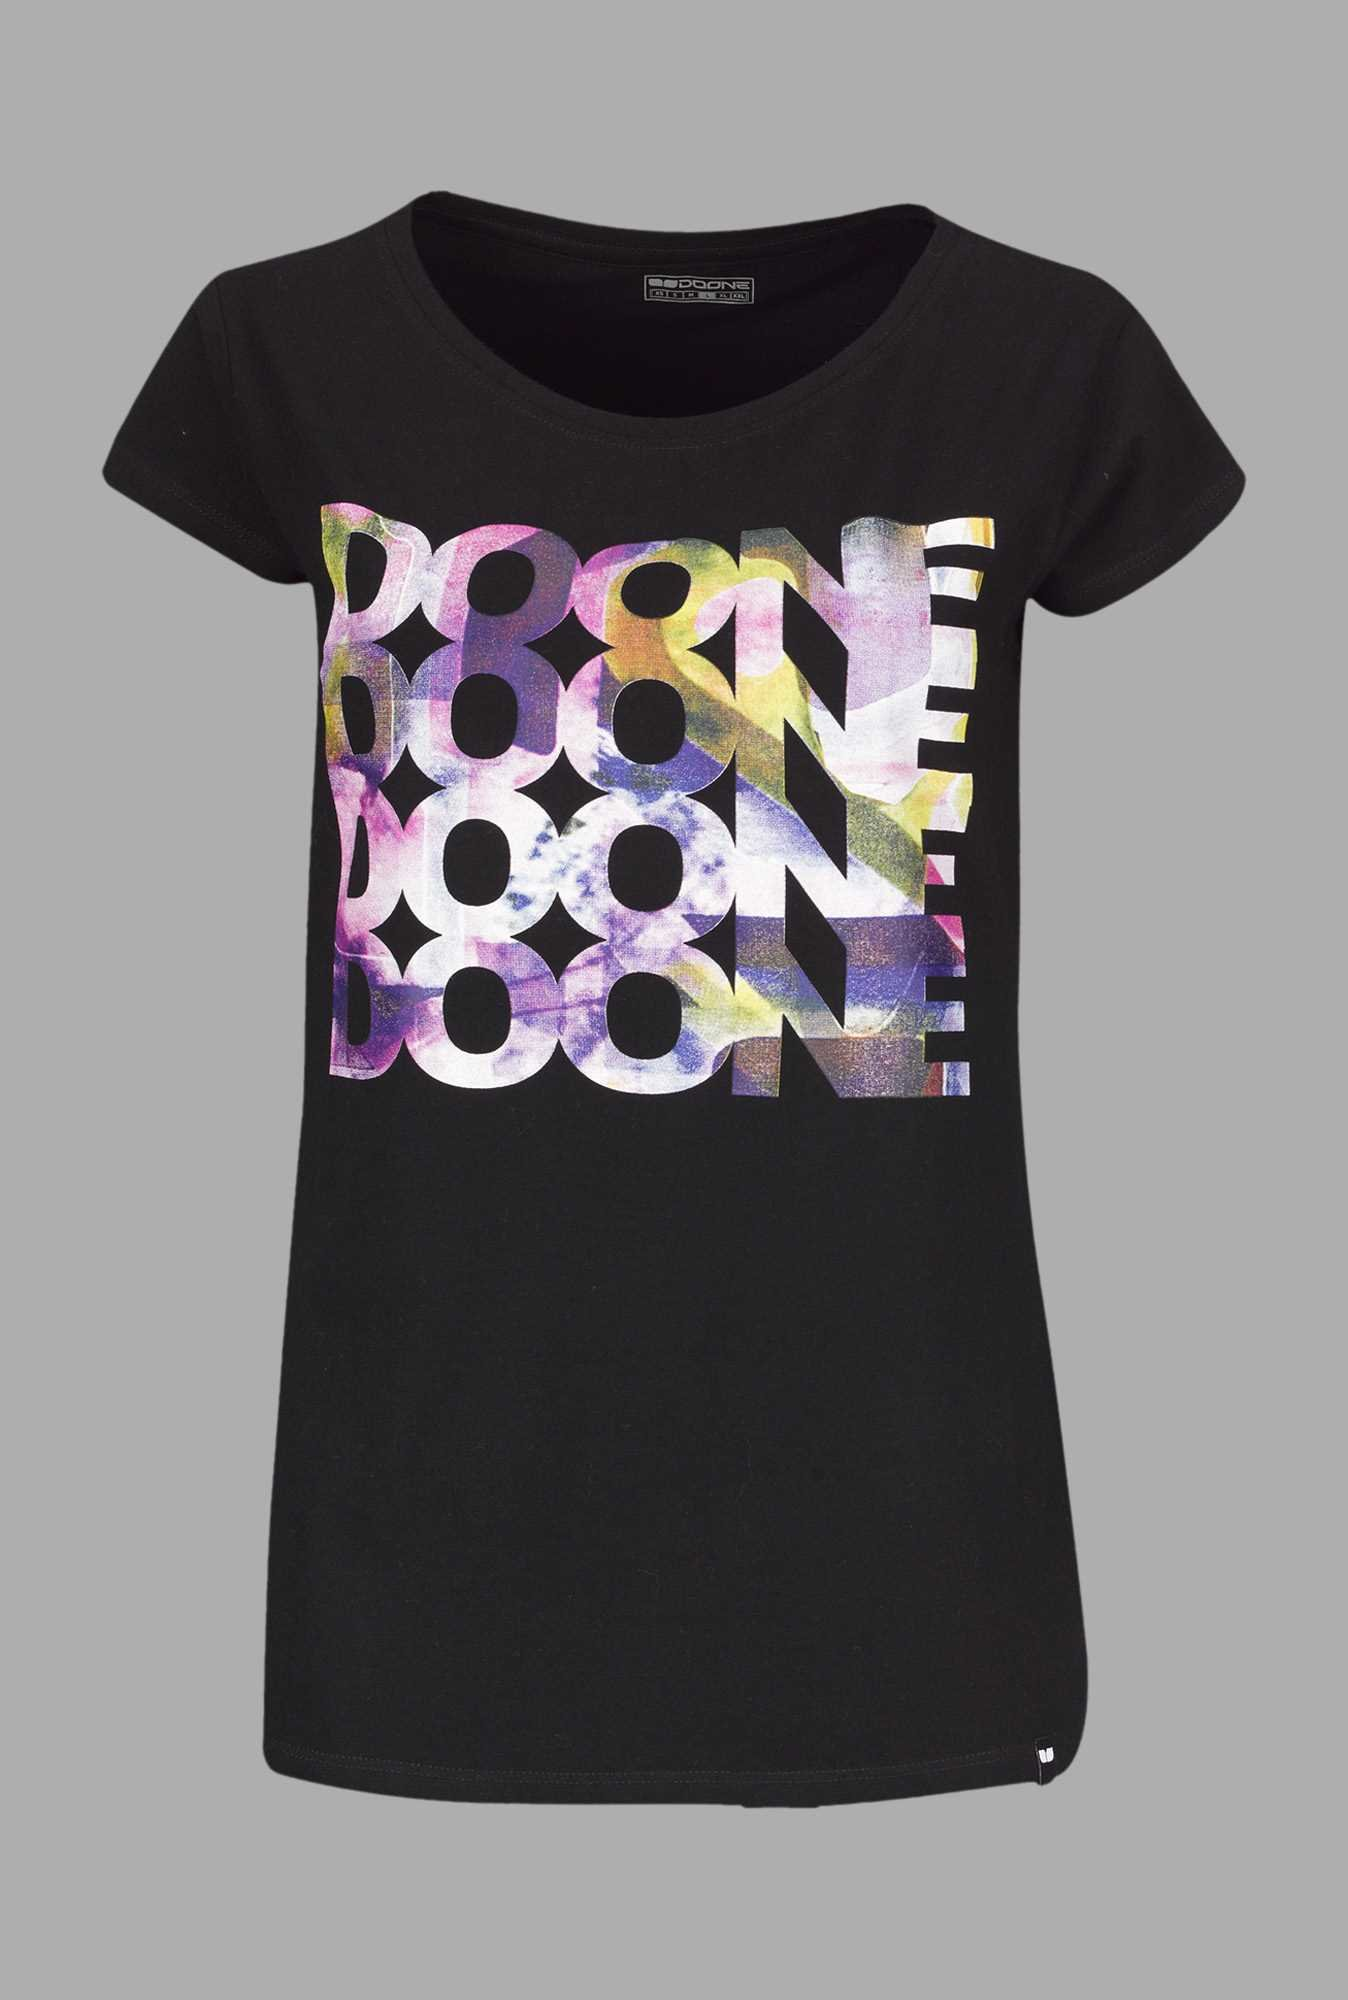 buy doone black printed training t shirt online at best